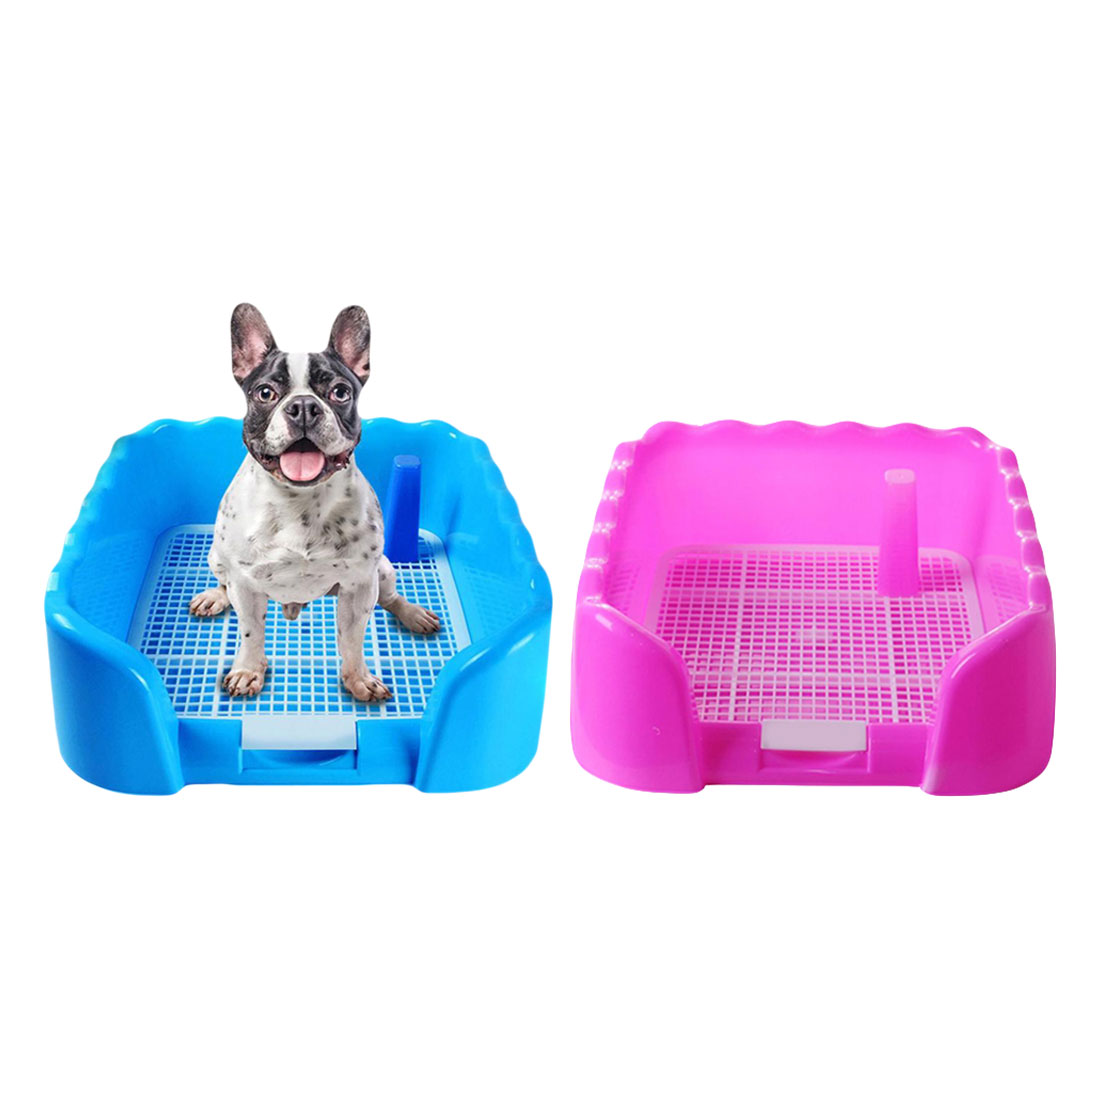 Portable Puppy Training Tray with Fence for Pet Dogs and Cats Potty and Pee Training Indoor 8